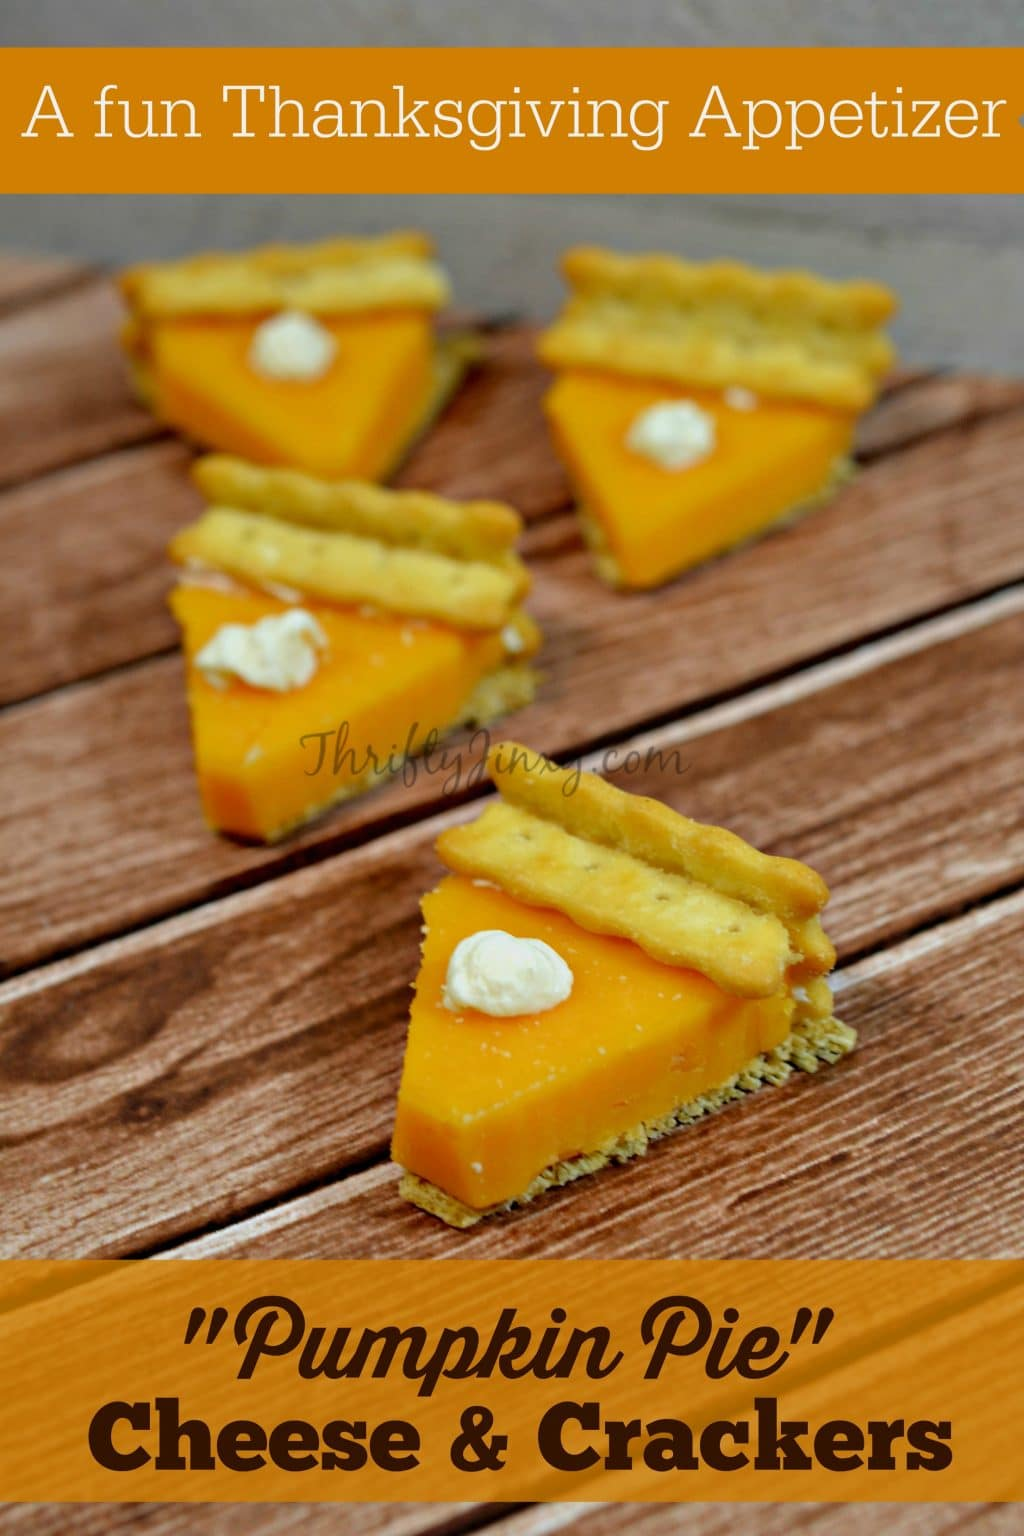 This Pumpkin Pie Cheese Crackers Thanksgiving Appetizer is made with crackers, cheese and cream cheese, but looks just like little pumpkin pie slices!